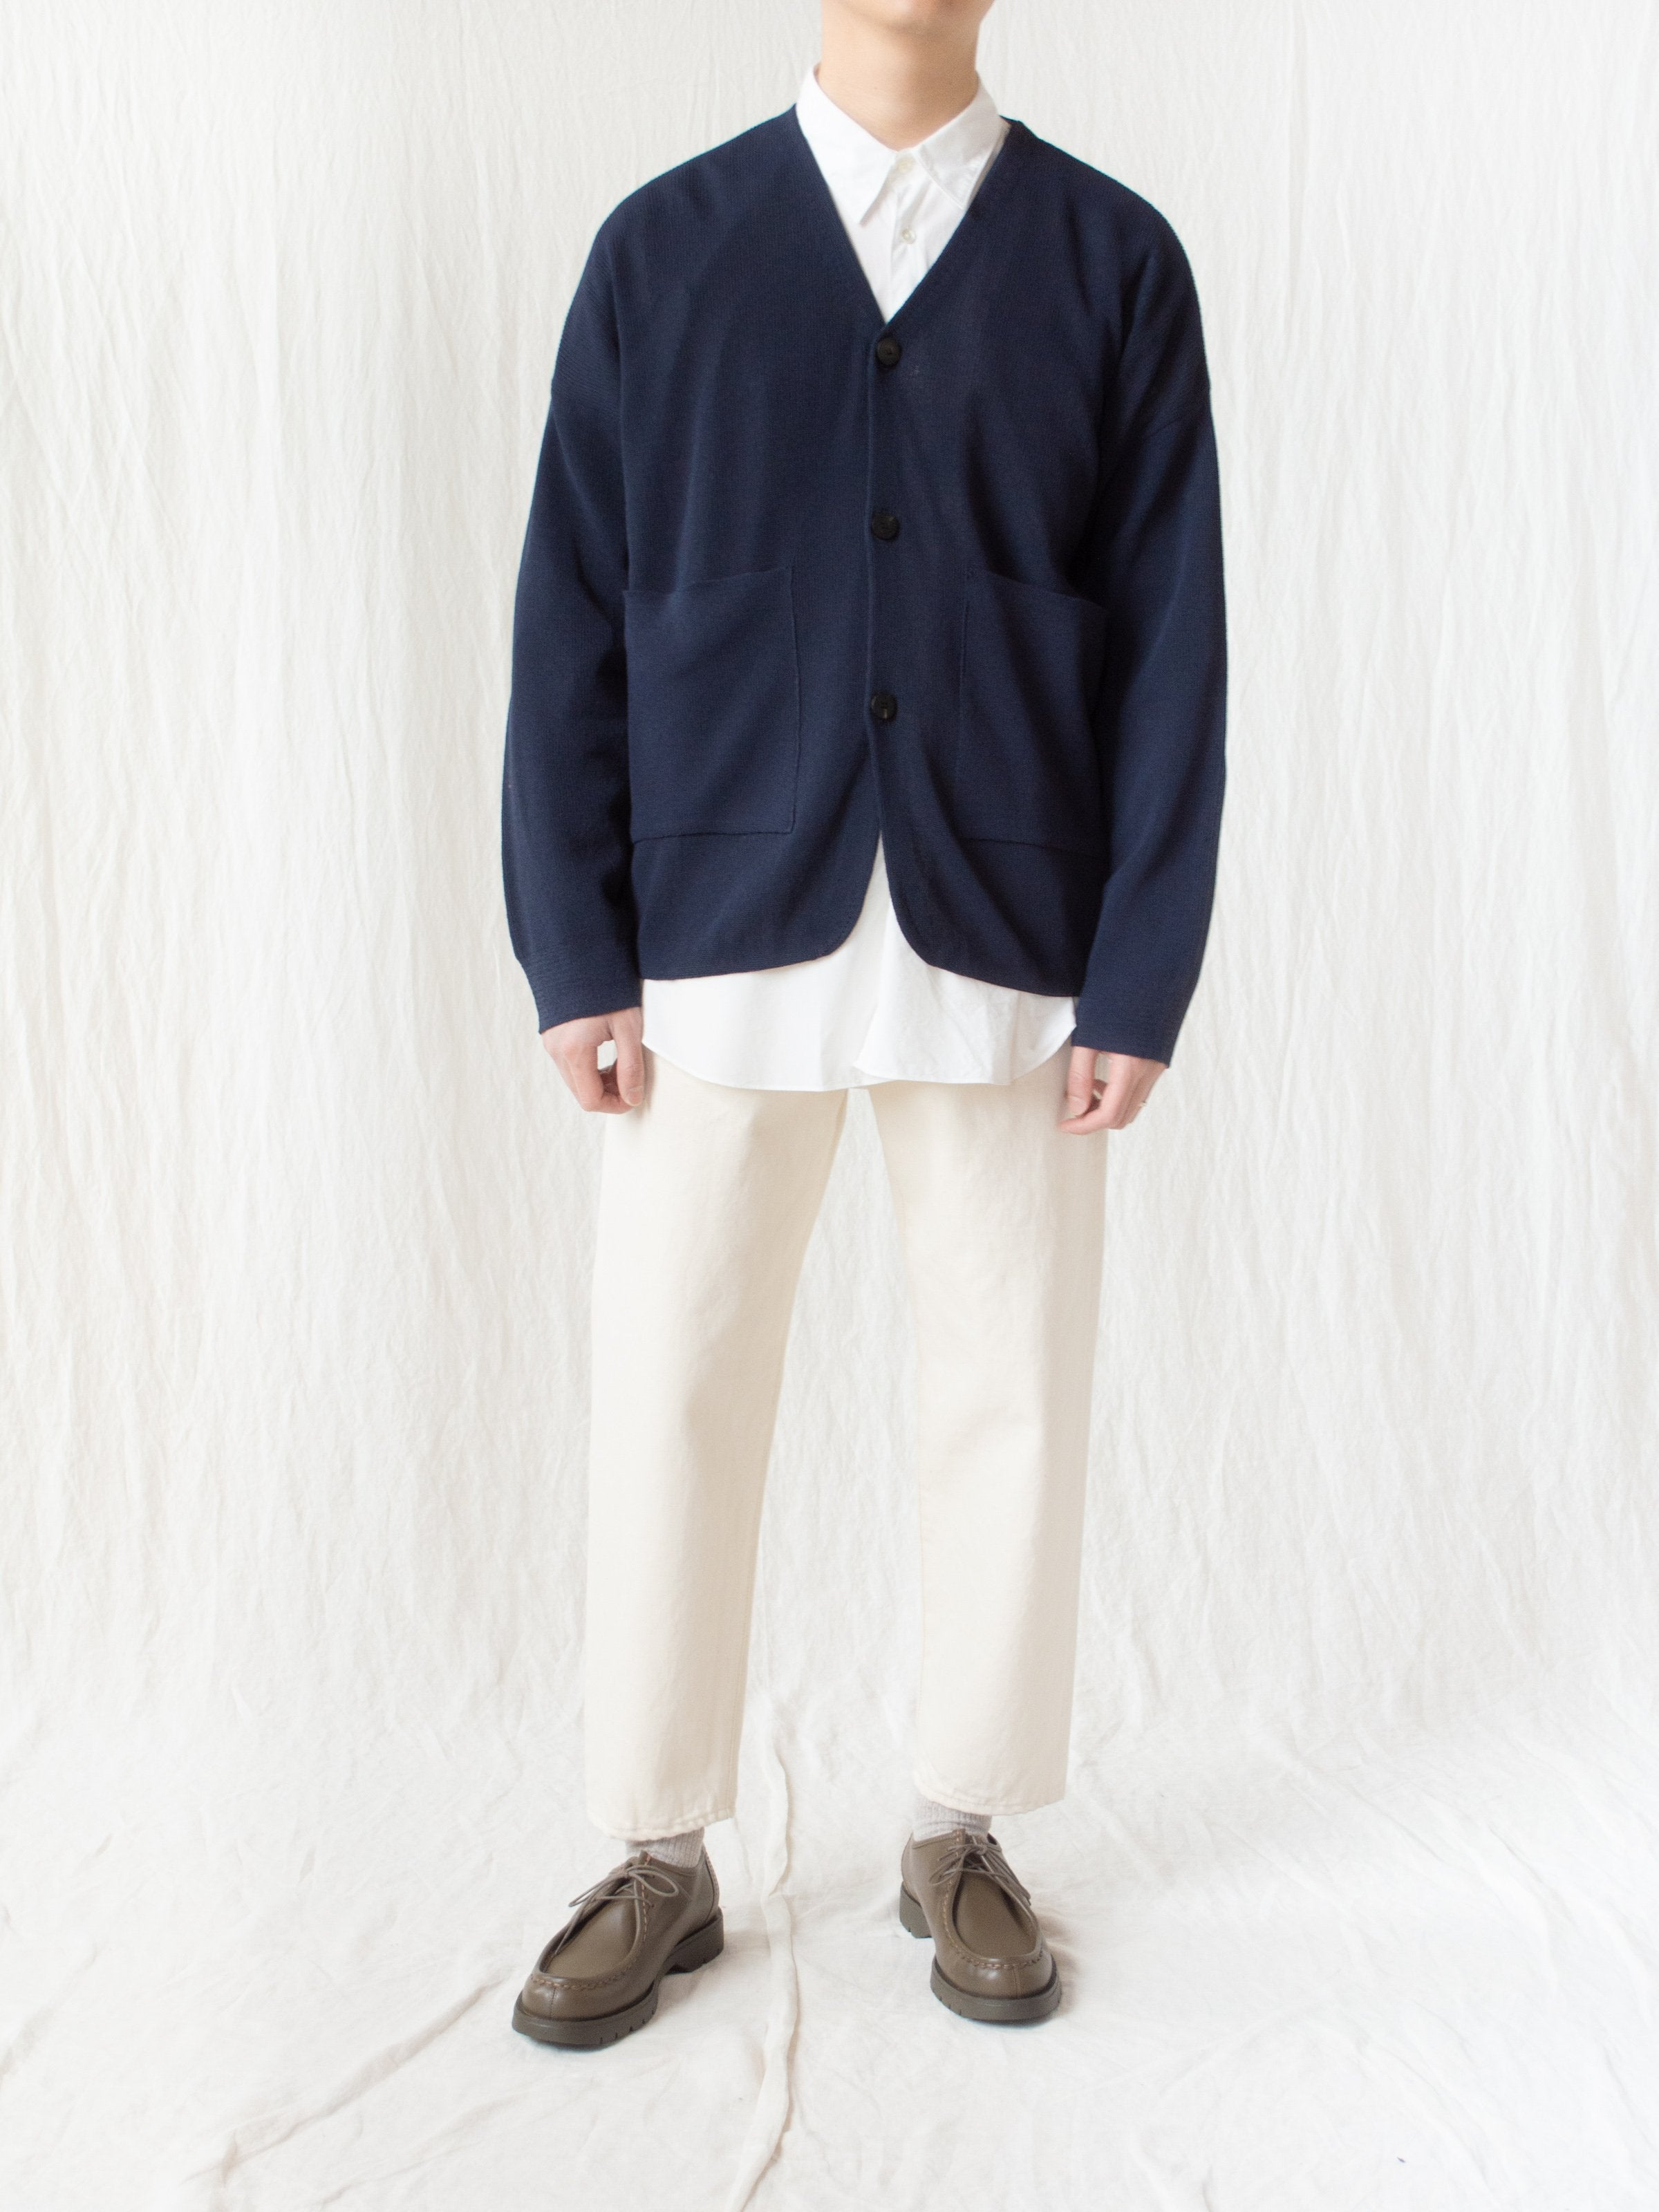 Namu Shop - Document Hanji Paper Relaxed Cardigan